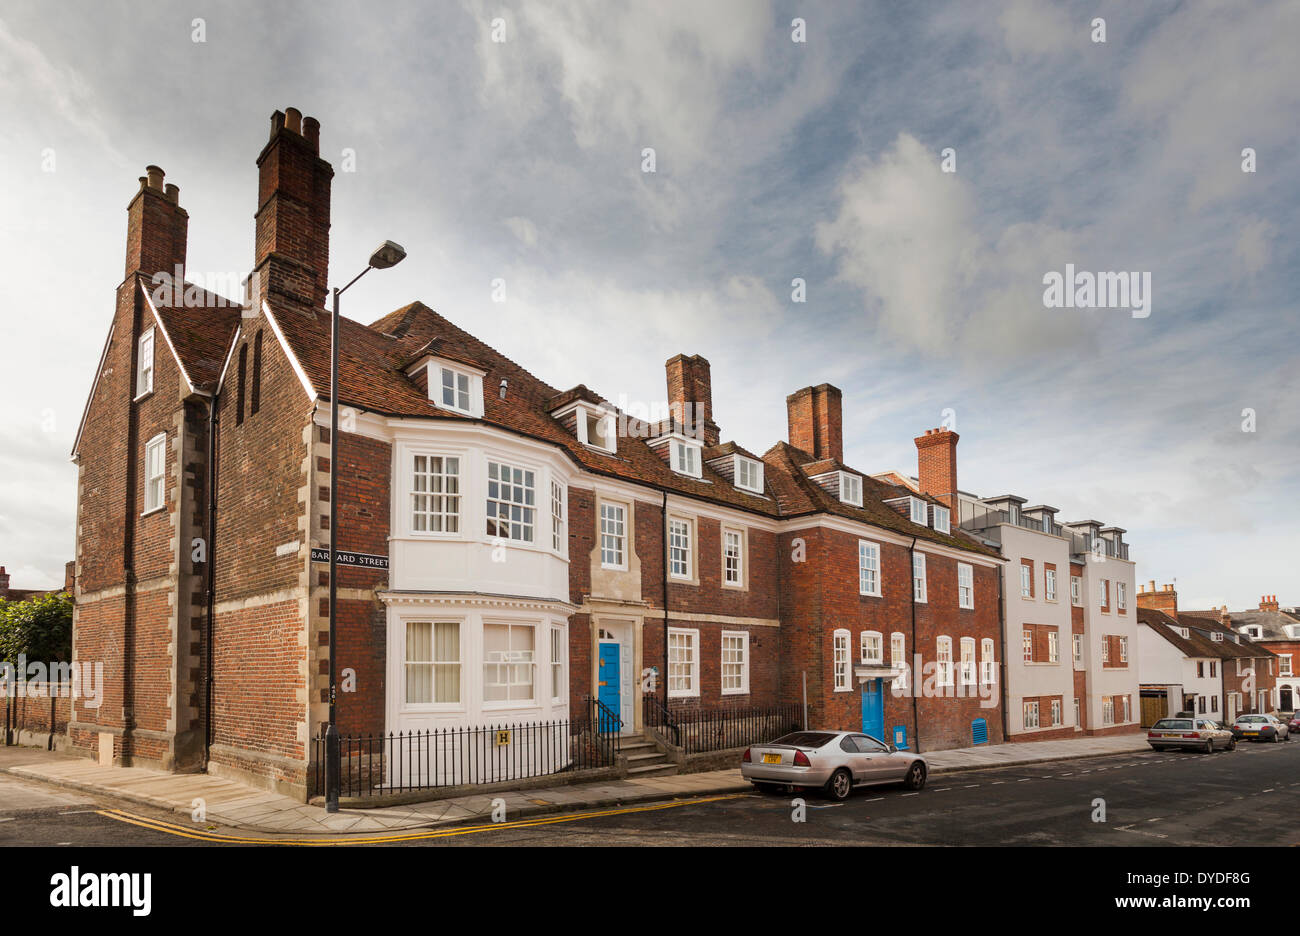 Exterior street view of the old buildings that make Damascus House and Emmaus House in Salisbury. - Stock Image